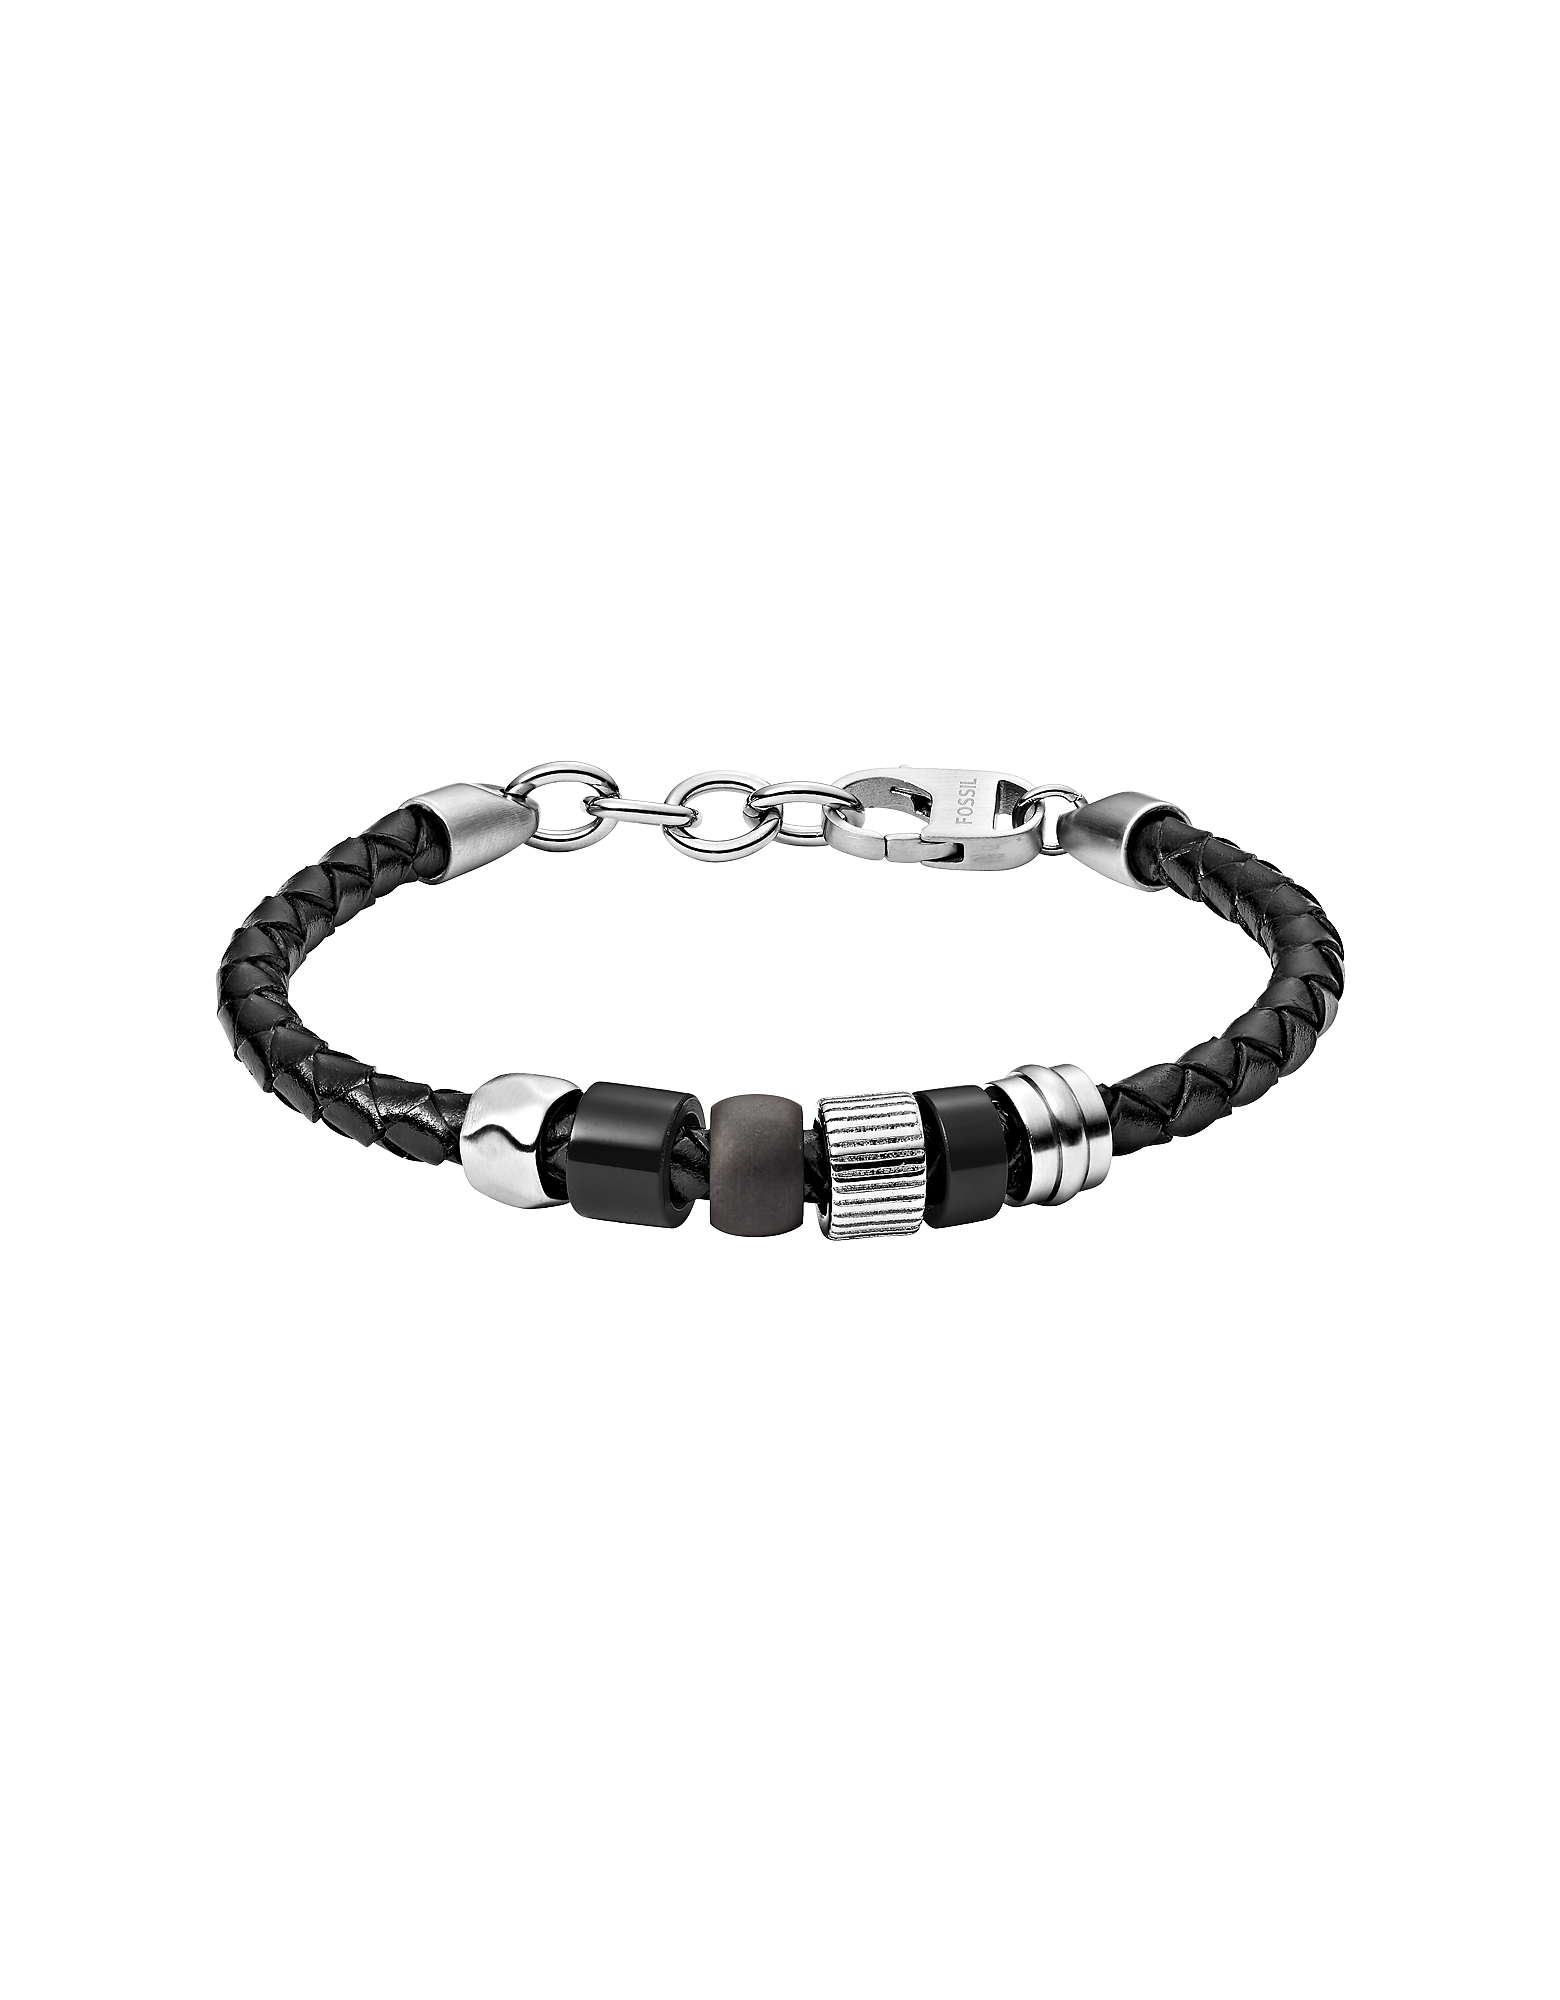 Fossil  Men's Bracelets Woven Black Agate Men's Bracelet